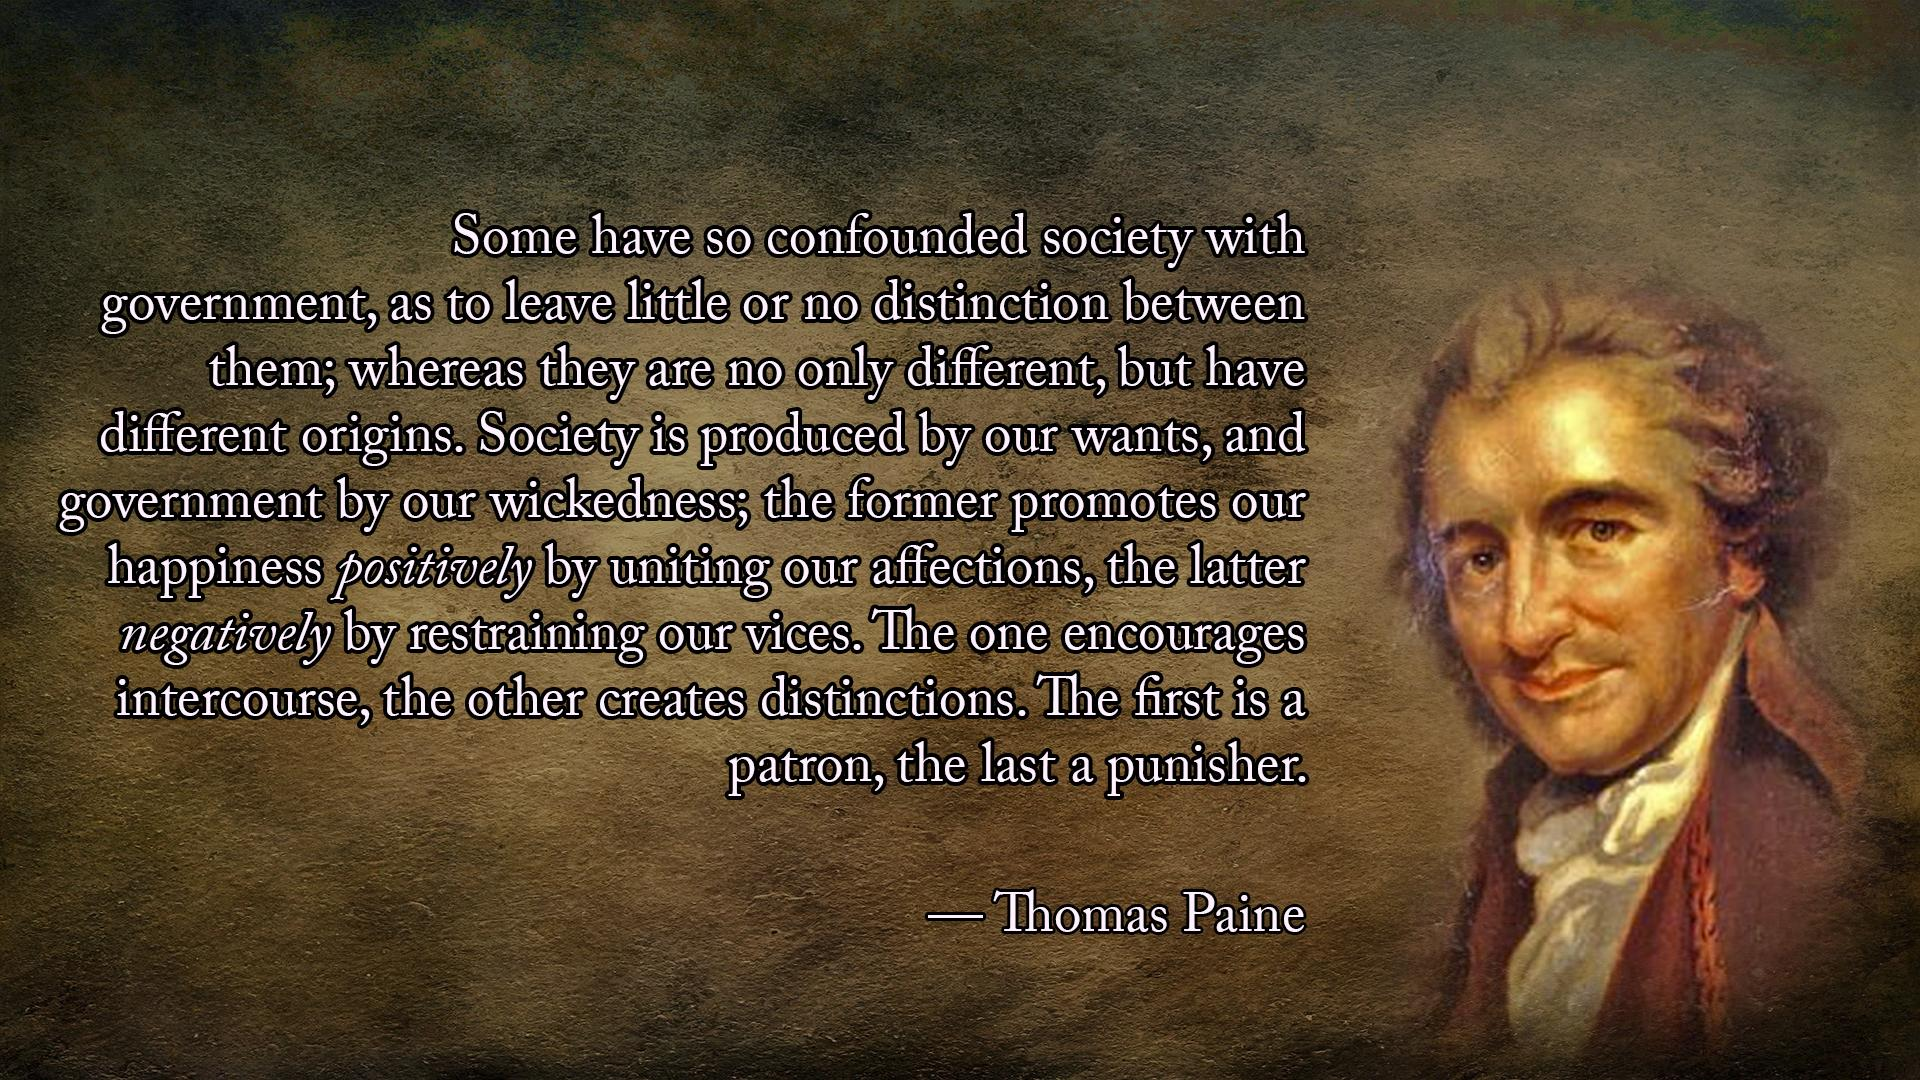 A Nice Thomas Paine Quote From The Introduction Of Common